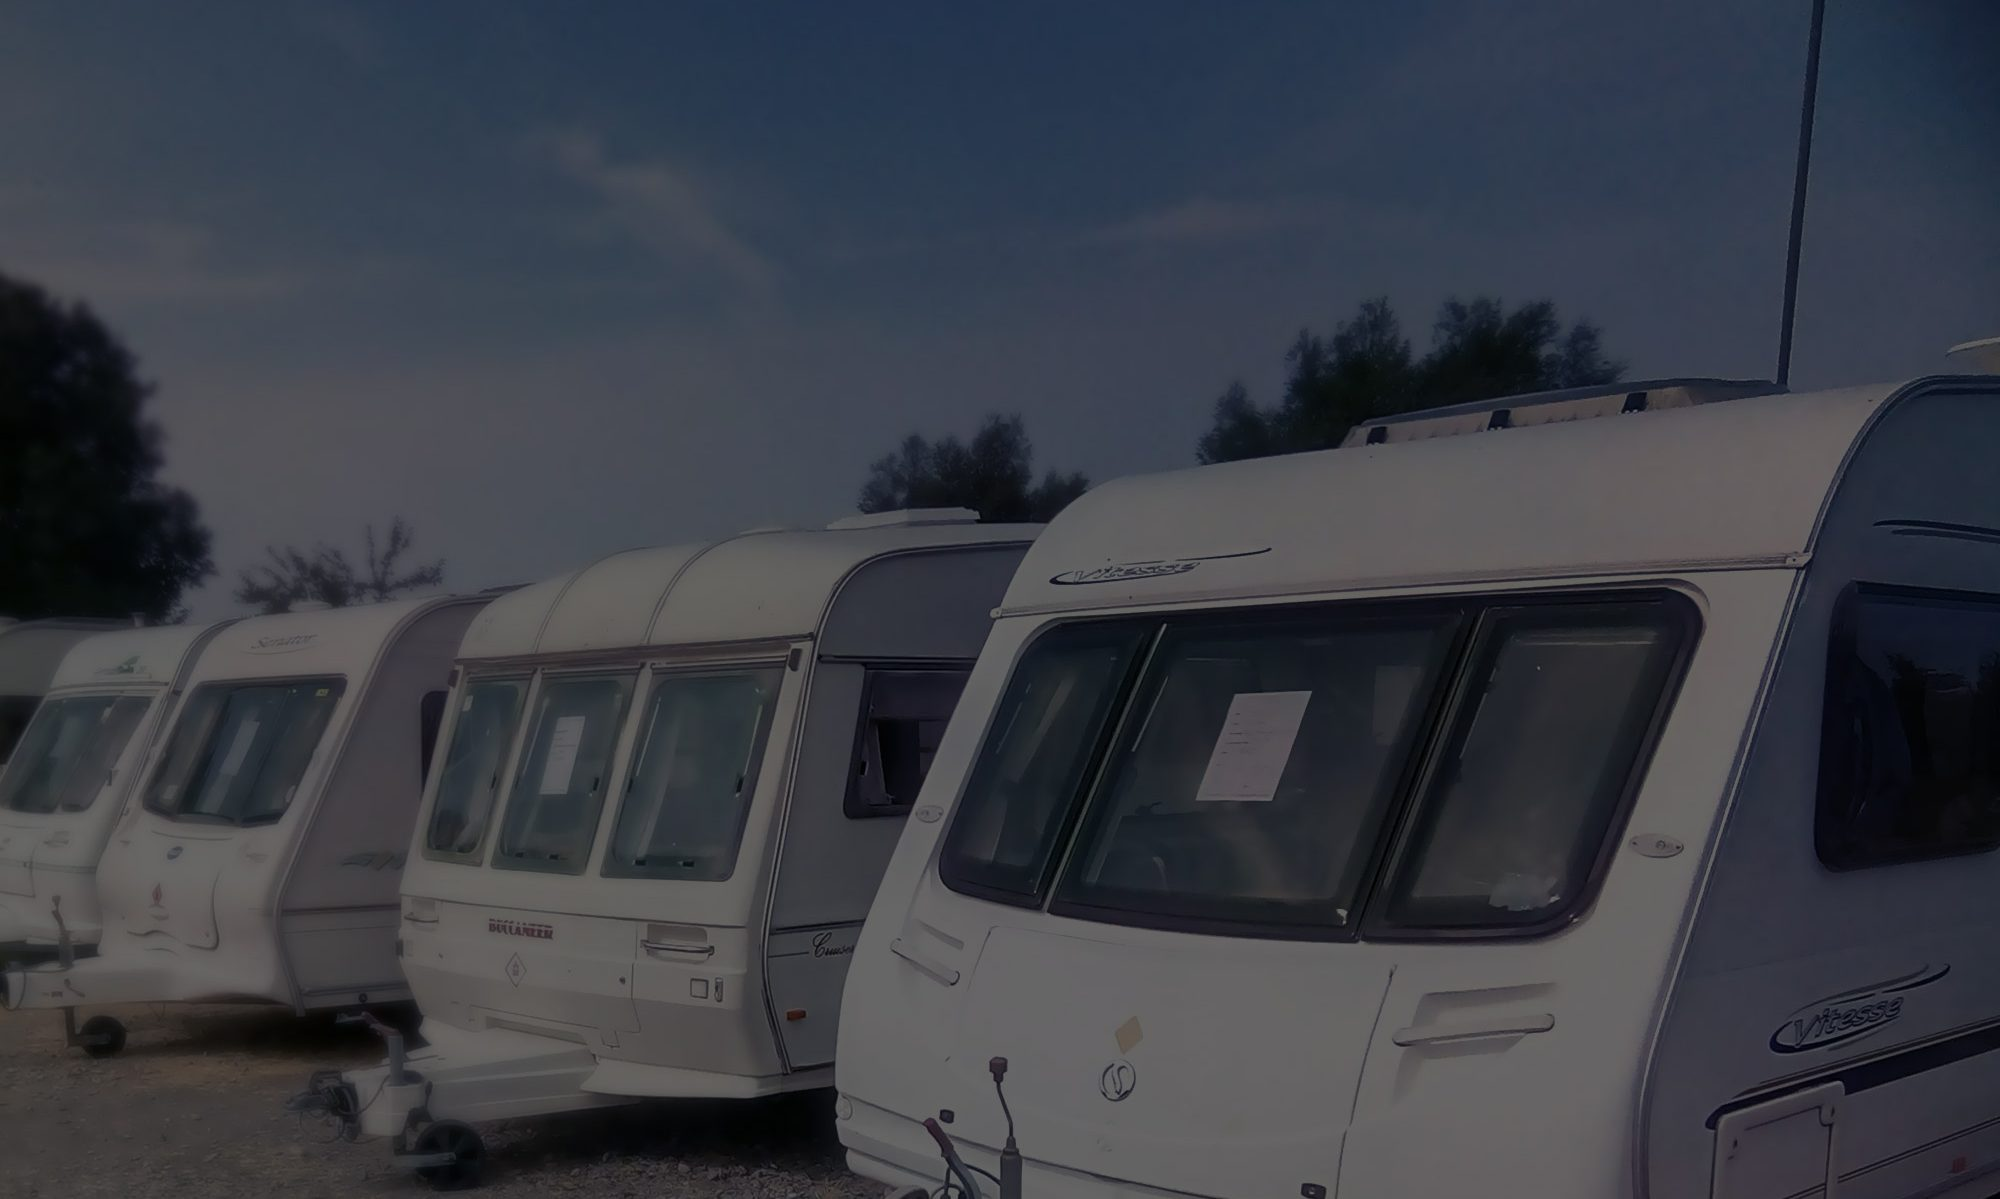 South Somerset Caravans